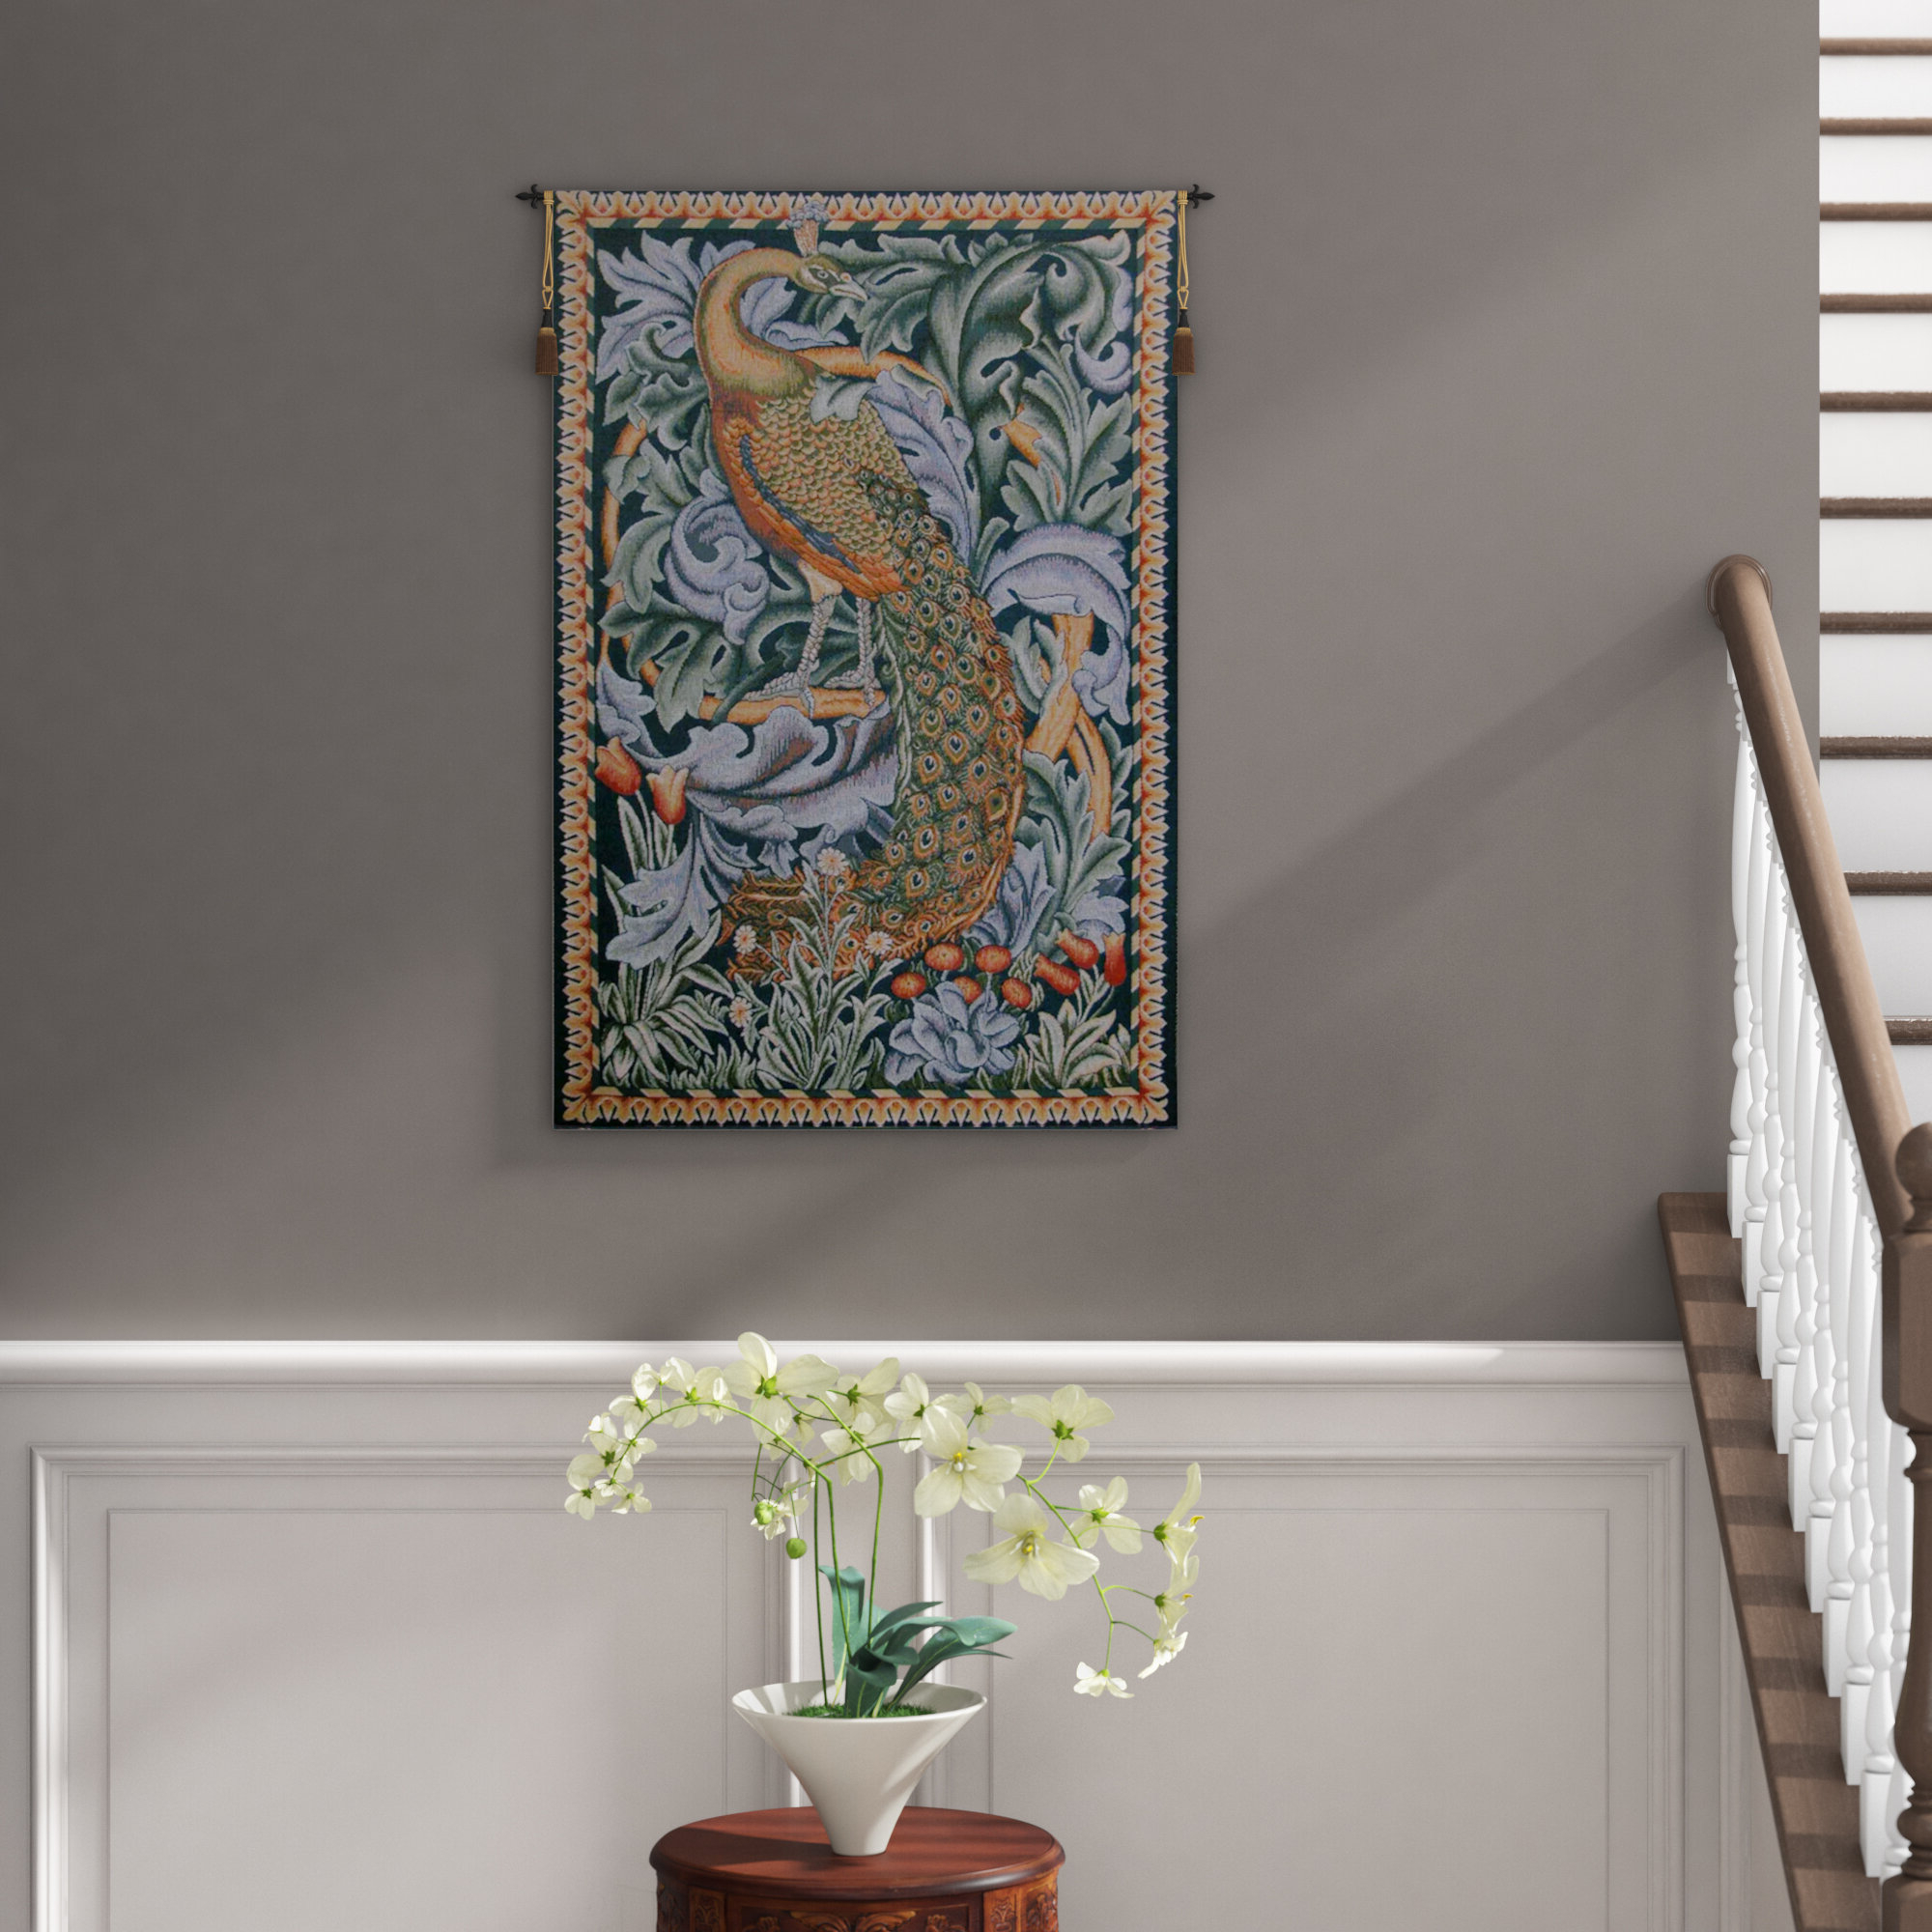 Widely Used Peacock European Tapestry Regarding Blended Fabric Peacock European Tapestries (View 2 of 20)